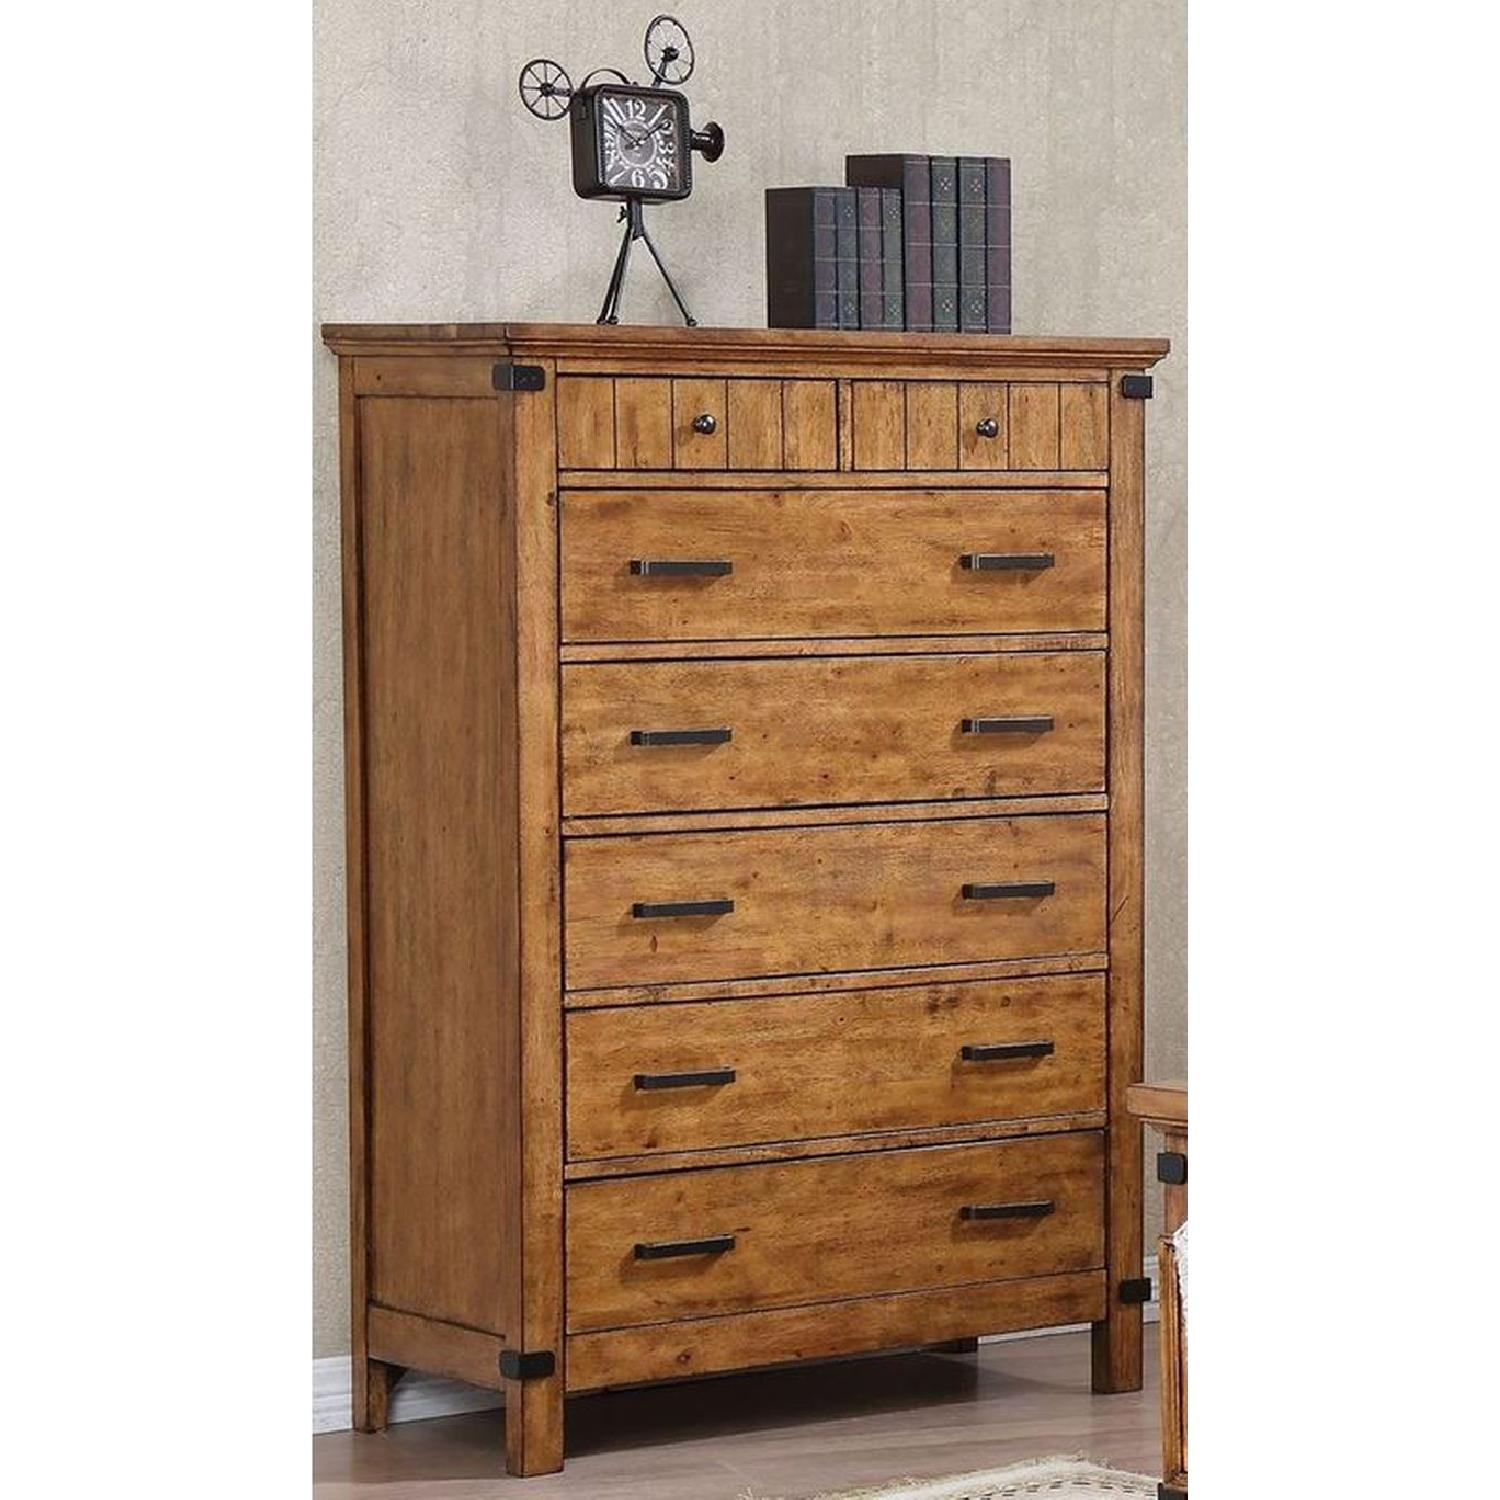 Rustic Style Chest in Warm Honey Brown Finish - image-4